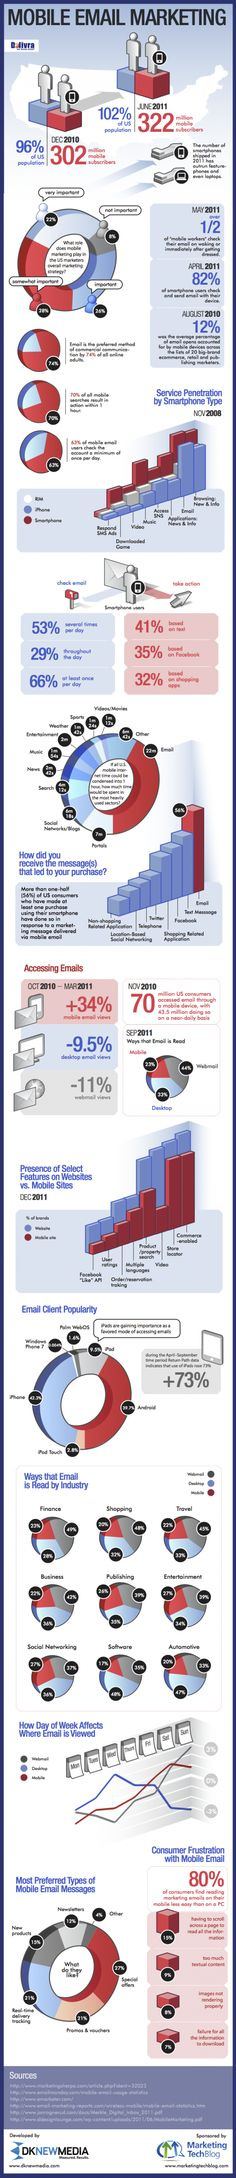 Mobile Email Marketing - INFOGRAPHIC - #Mobile #Marketing, #Optimization